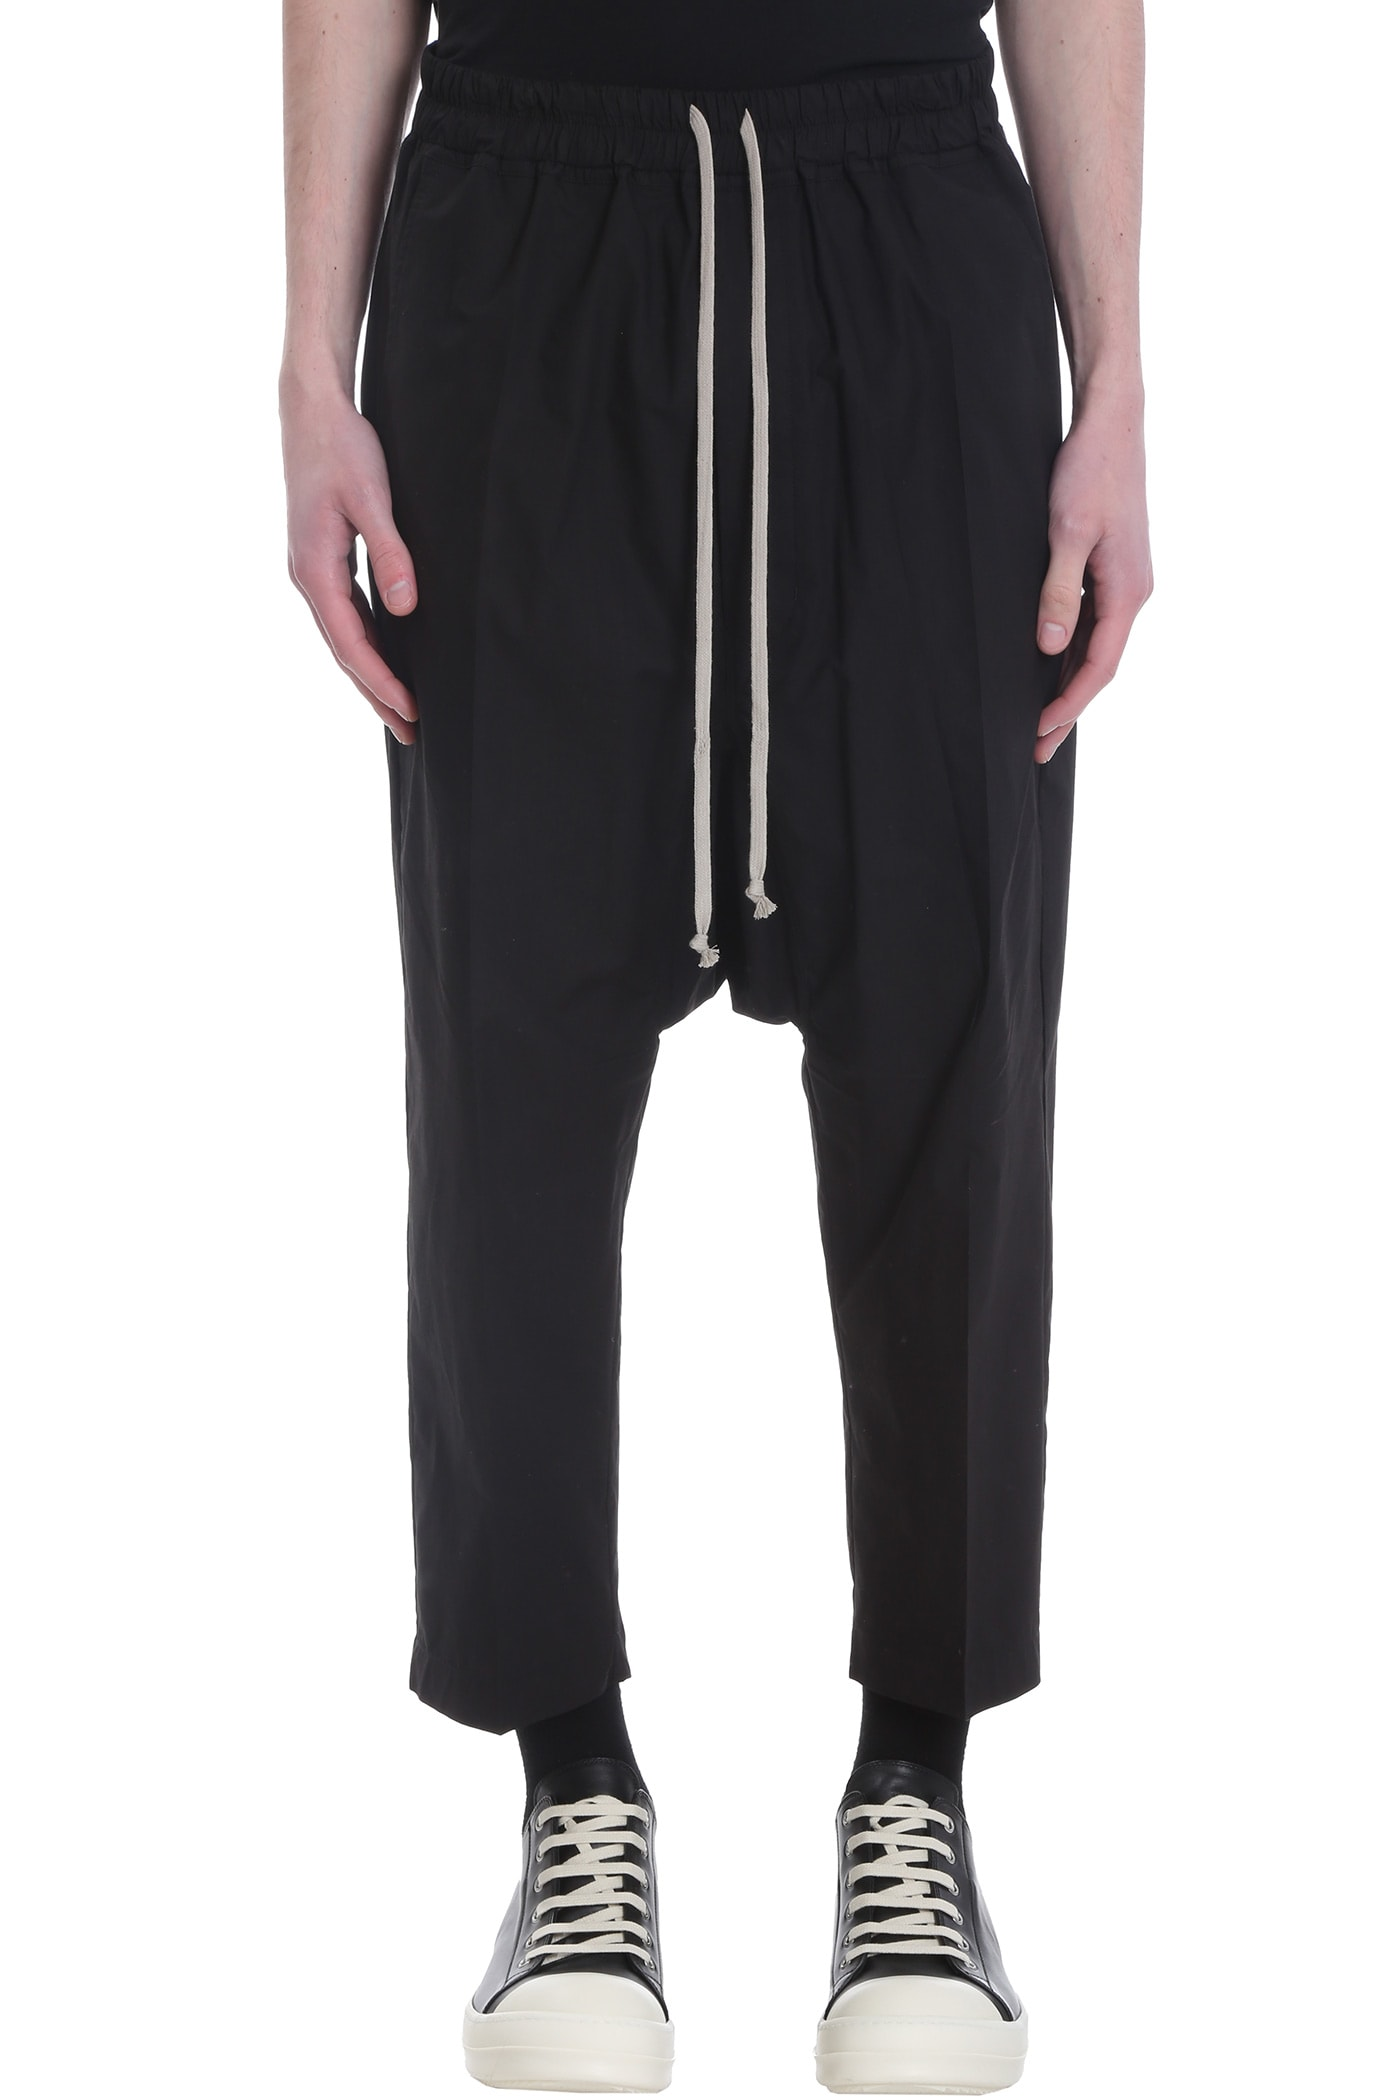 Rick Owens Drawstring Pants In Black Cotton